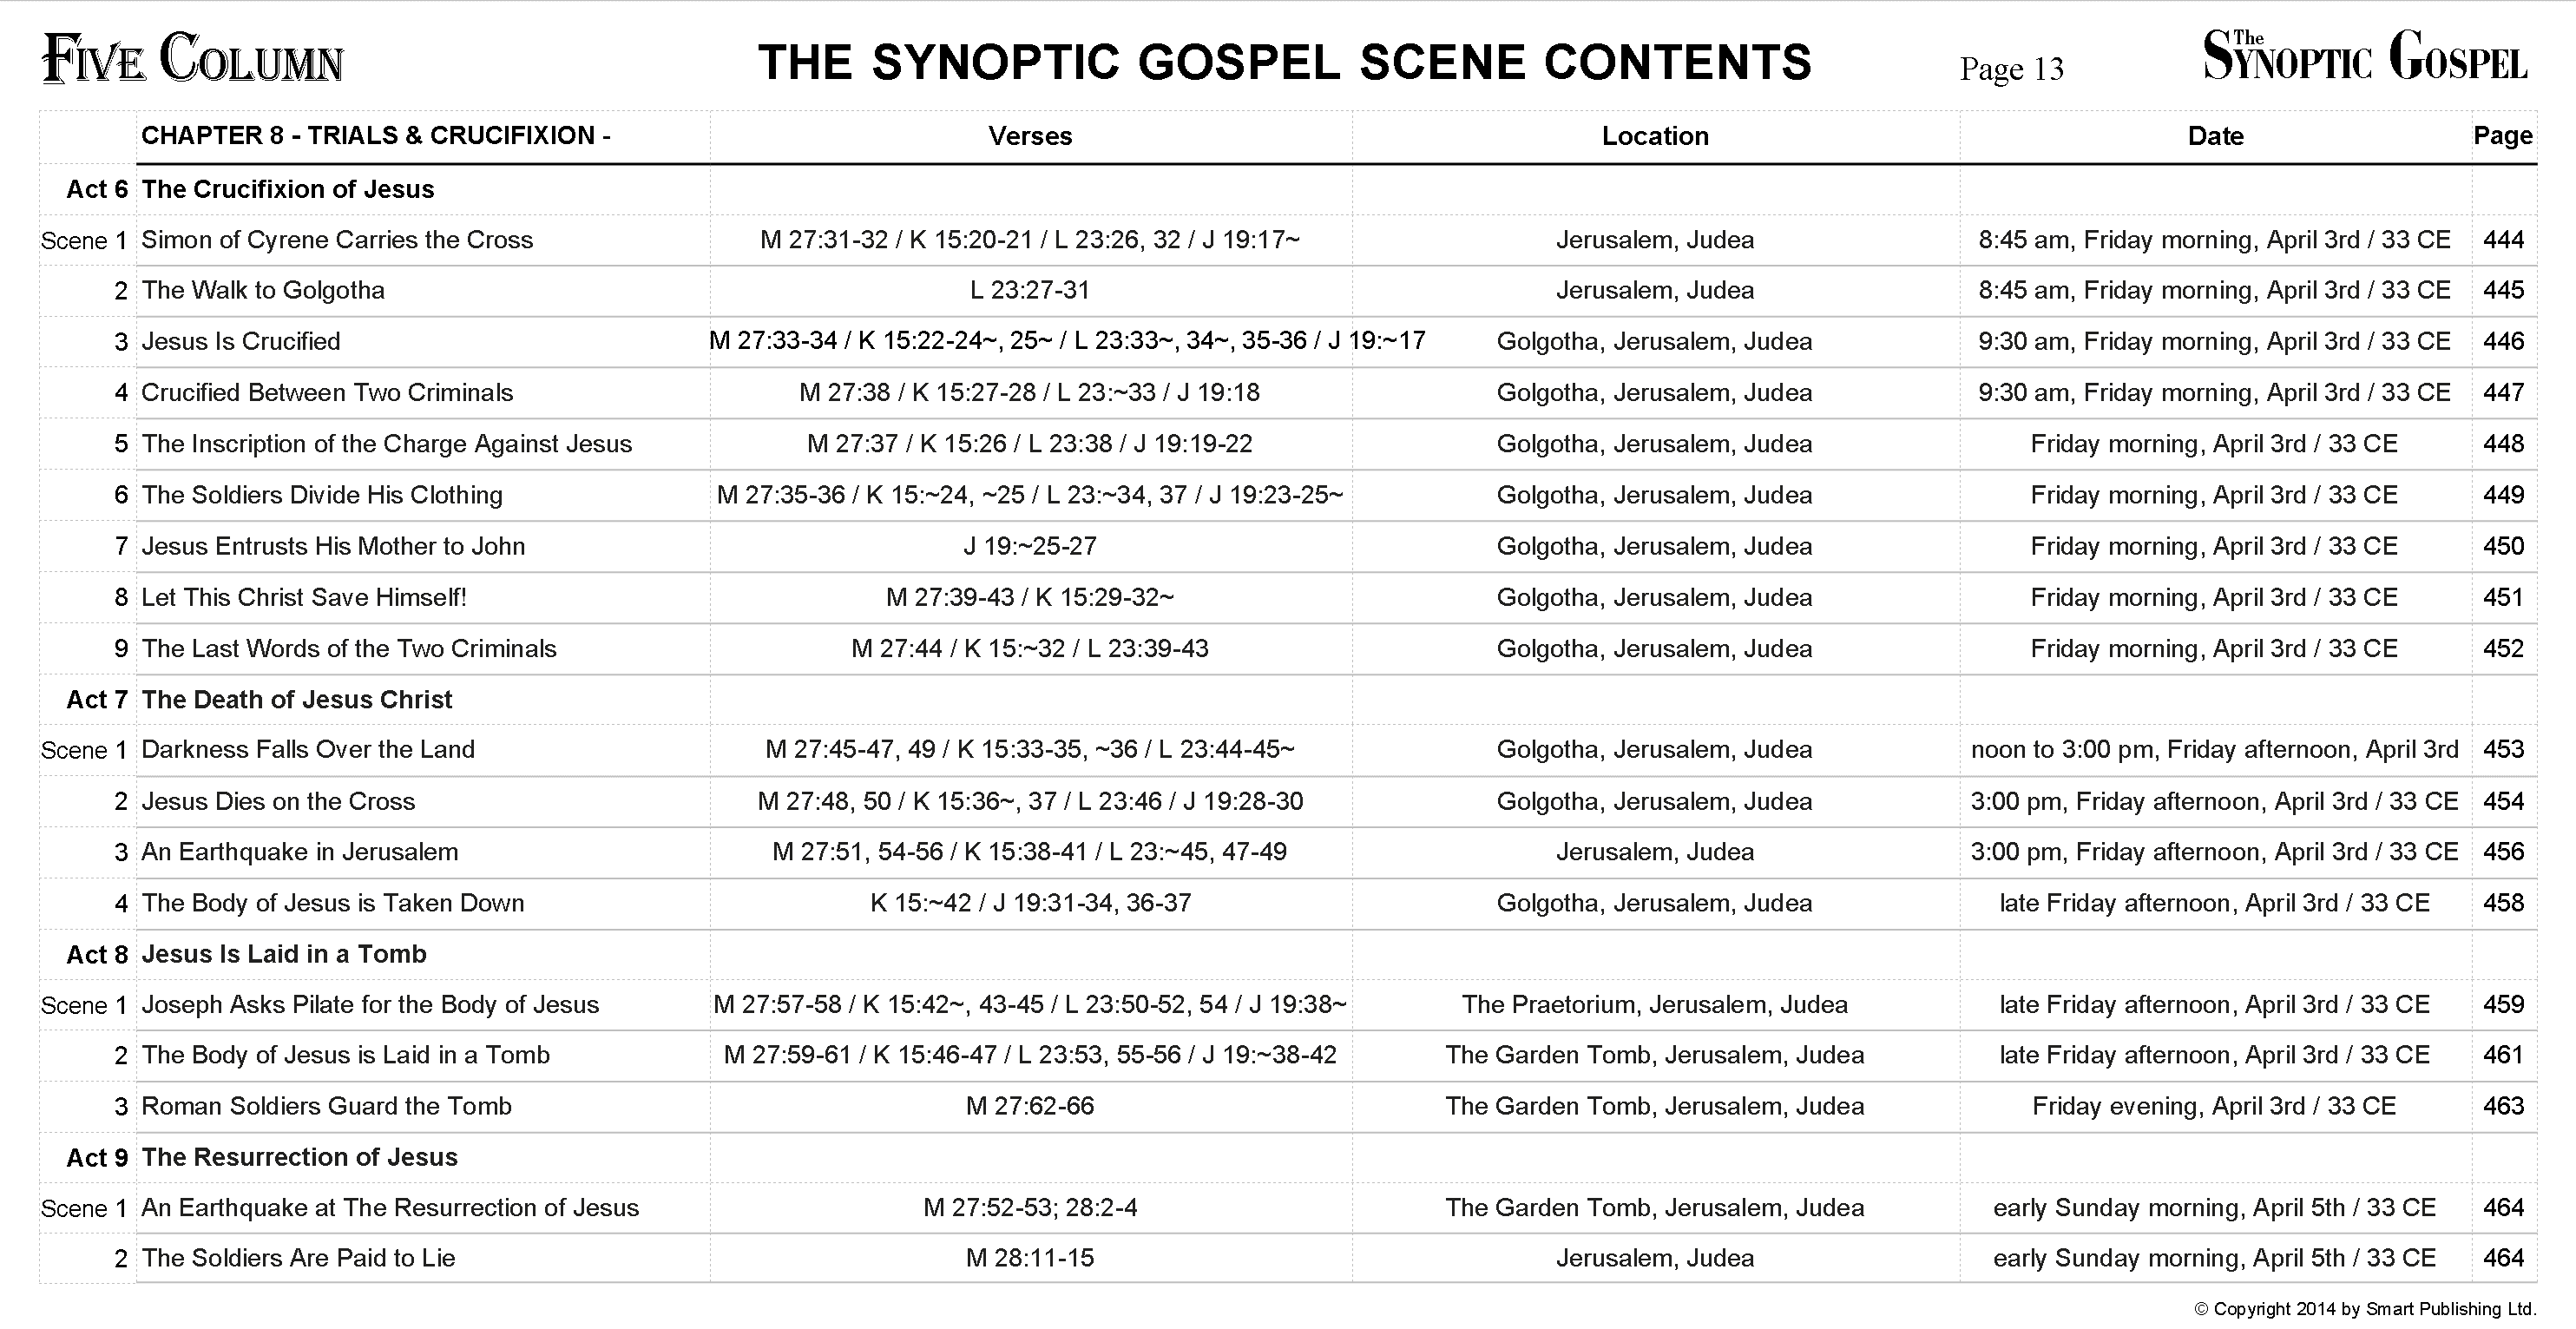 The Synoptic Gospel - Scene Contents - Chapter 8b